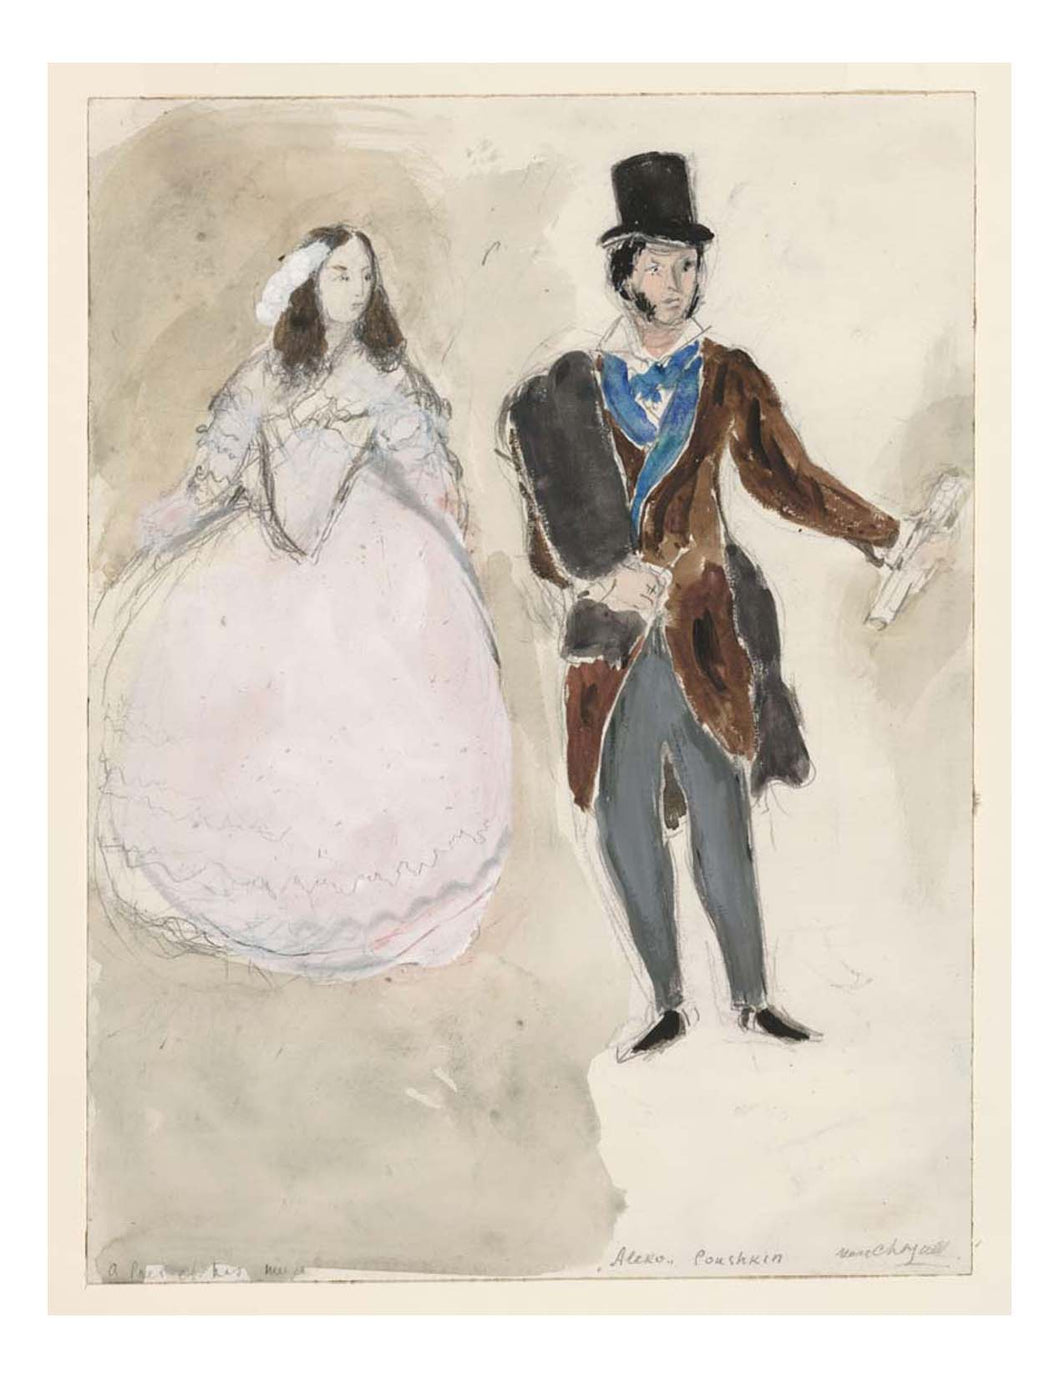 Marc Chagall - A Poet and His Muse, costume design for Aleko, 16x12